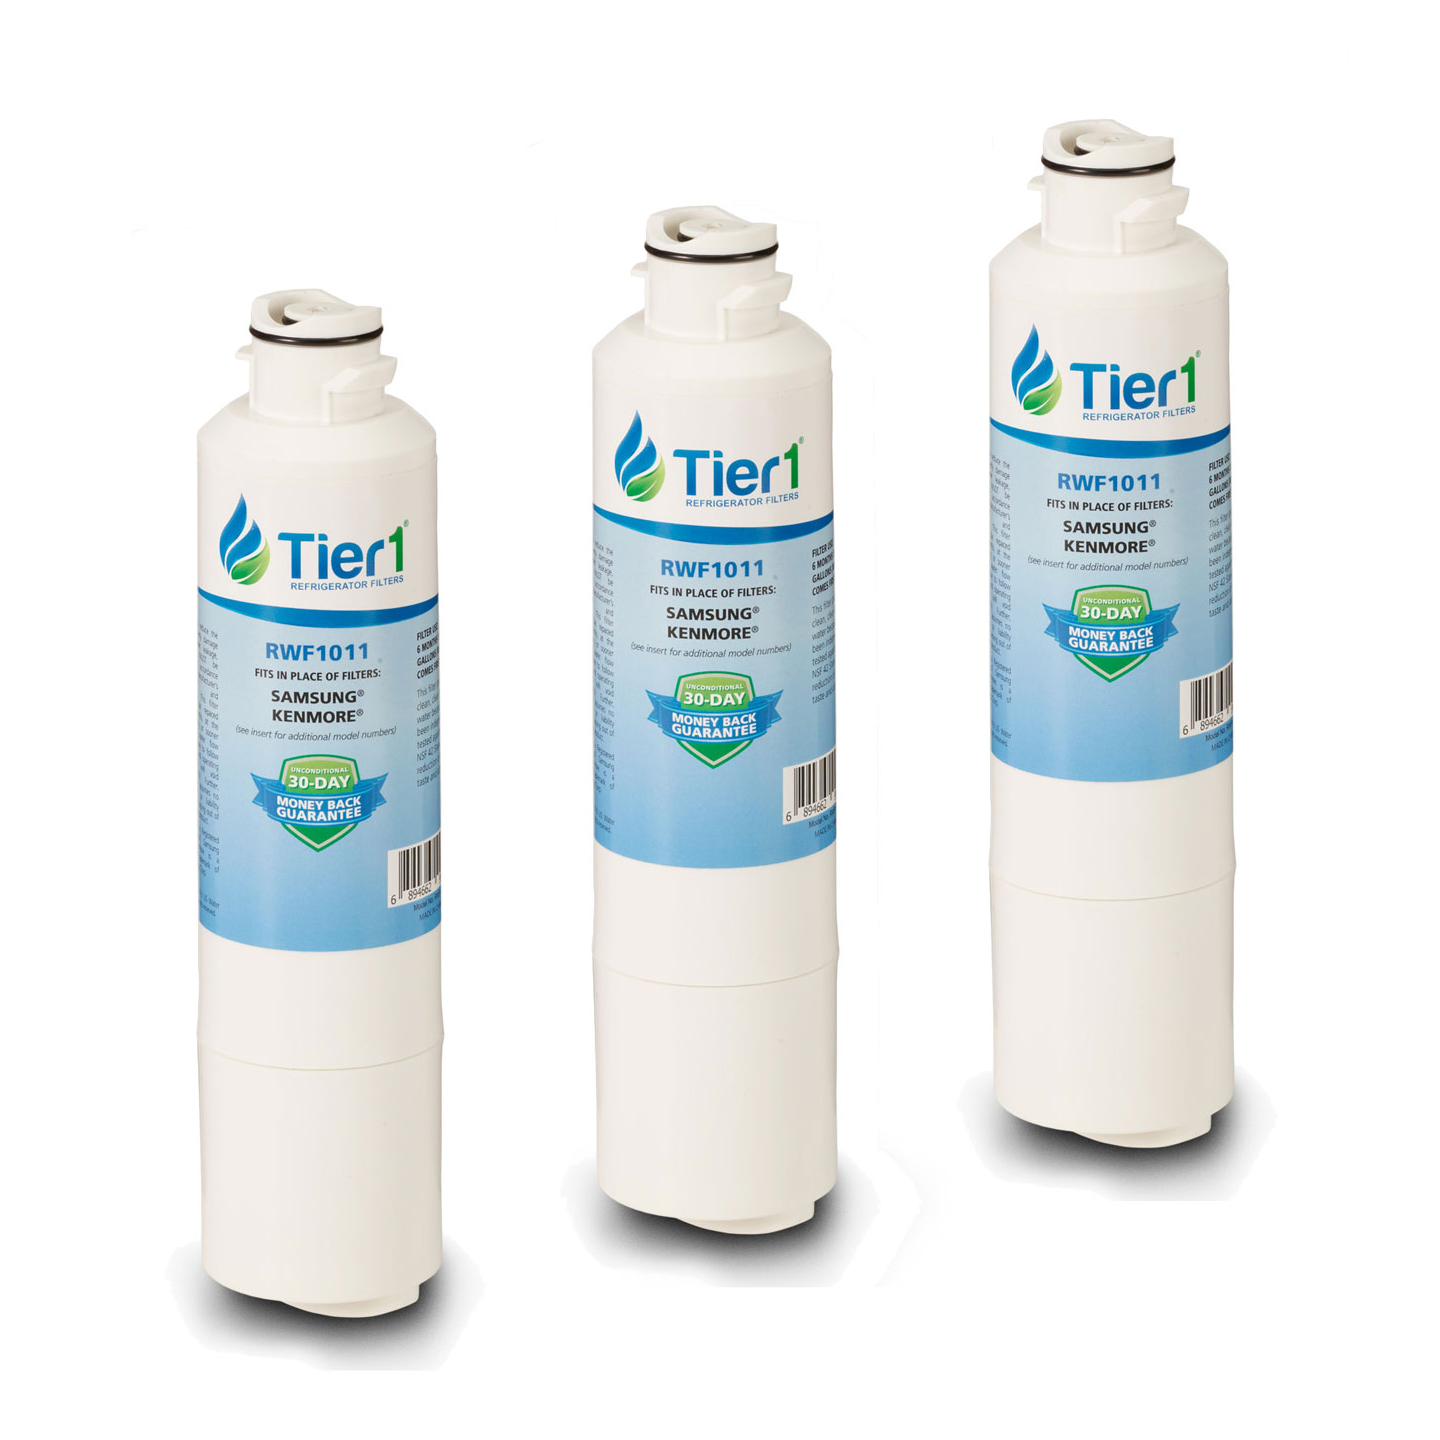 DA29-00020B Samsung Comparable Refrigerator Water Filter Replacement By Tier1 (3 Pack) TIER1_RWF1011_3_PACK